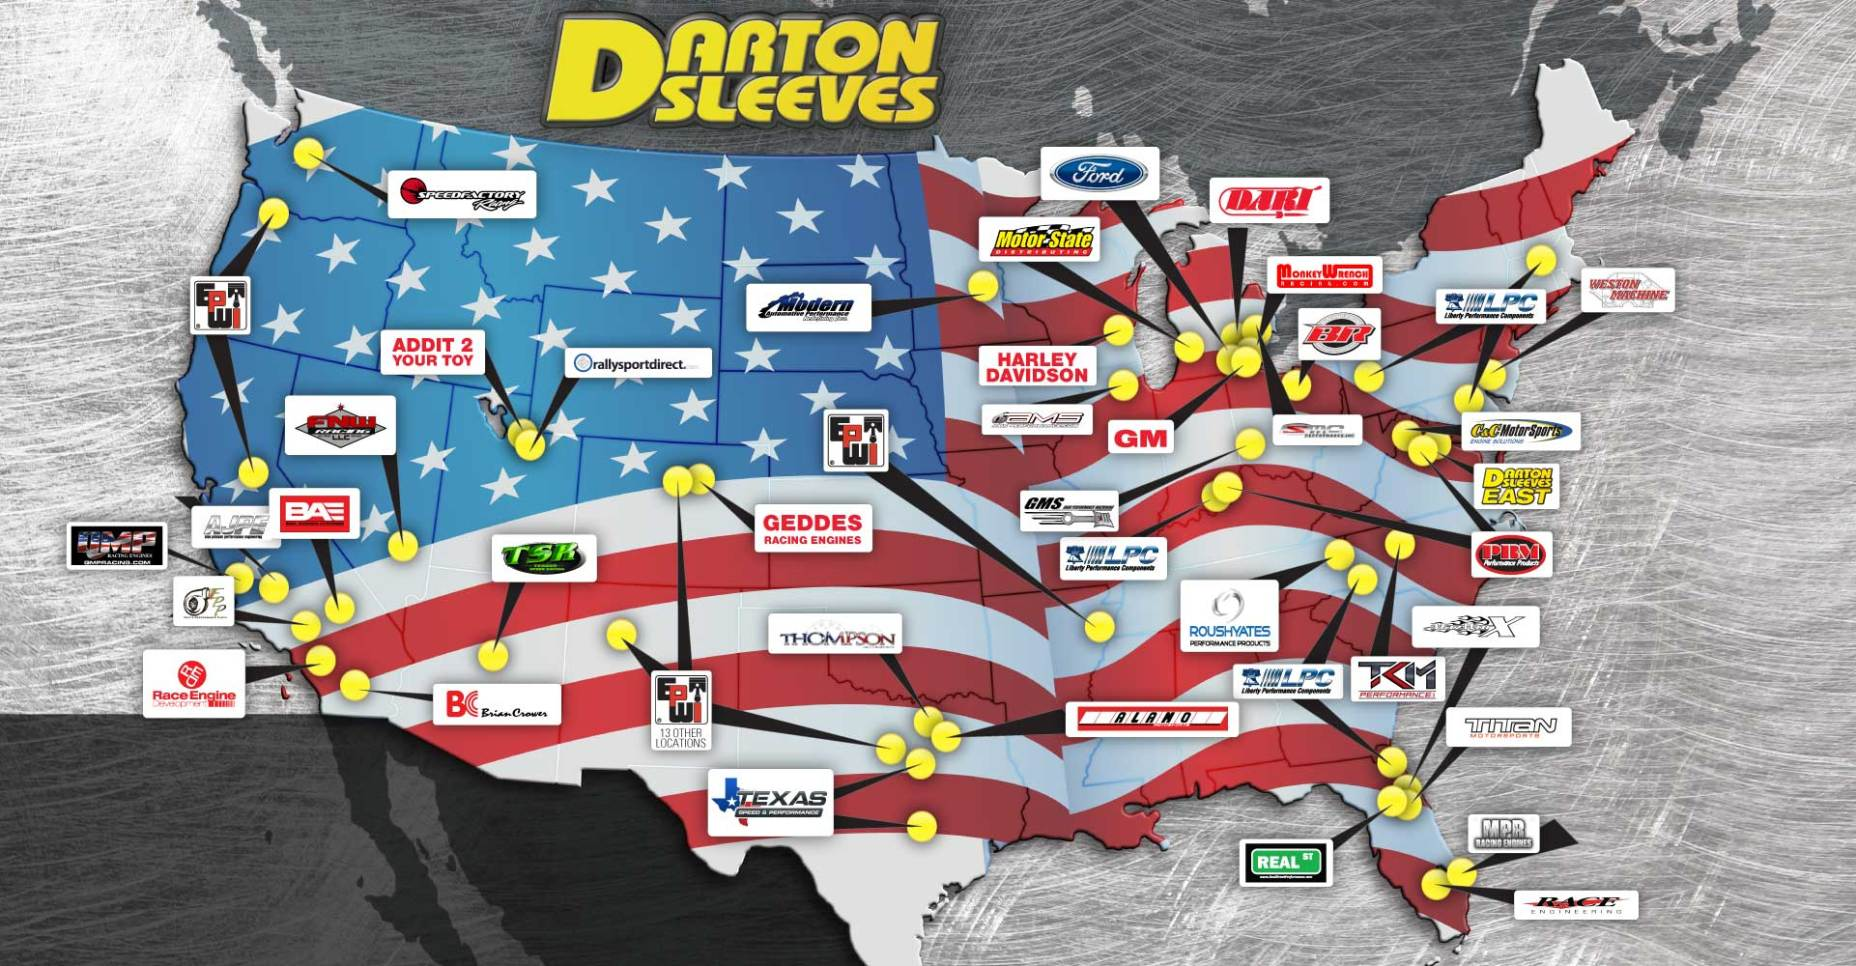 Darton Sleeves. Everywhere our customers want us to be.